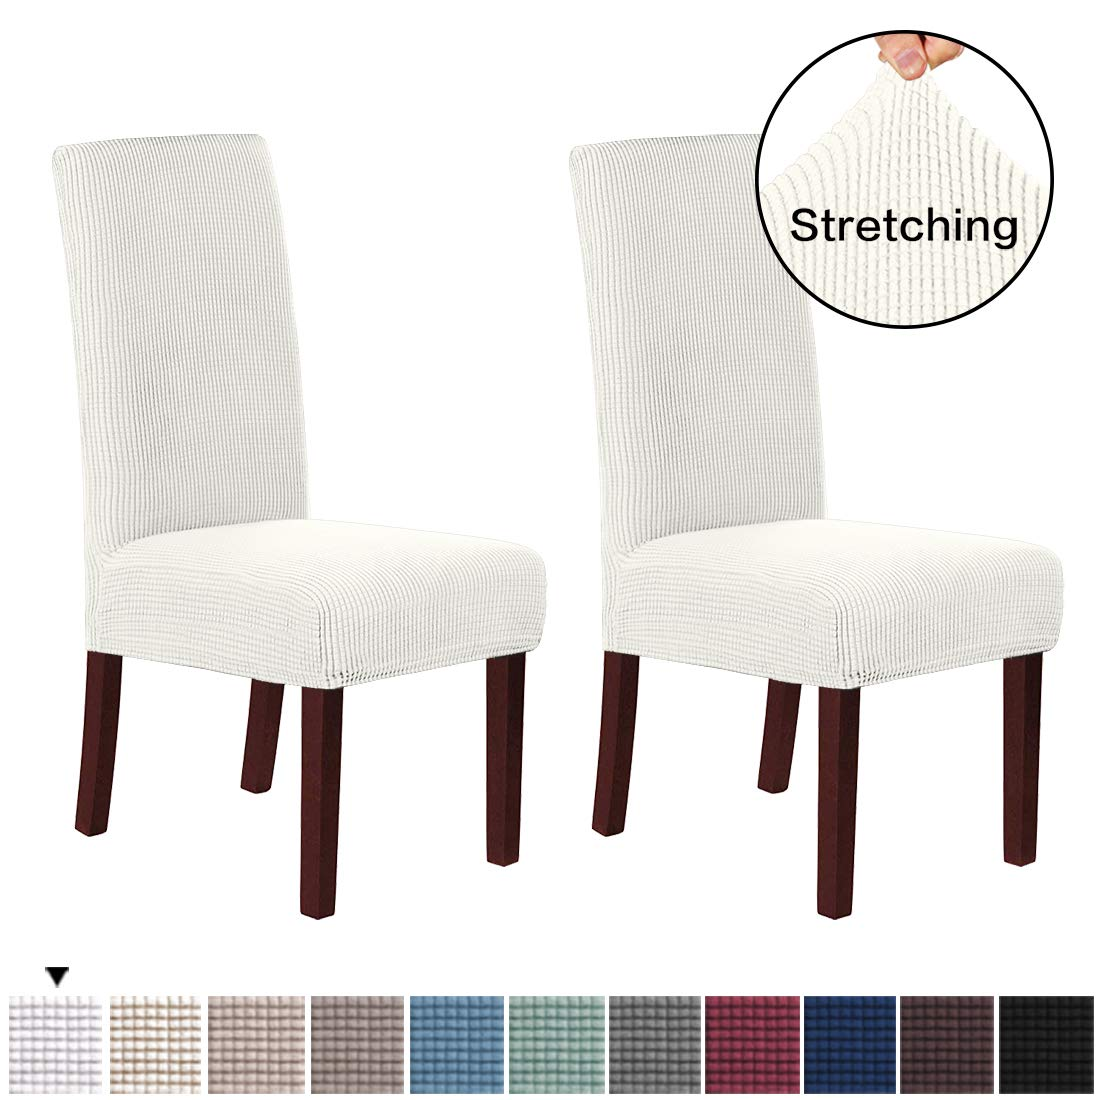 Banquet Chair Seat Protector Slipcover for Home Party Hotel Wedding Ceremony H.VERSAILTEX Soft Spandex Fit Stretch High Back Dining Room Chair Covers with Knitted Jacquard Pattern Black 2